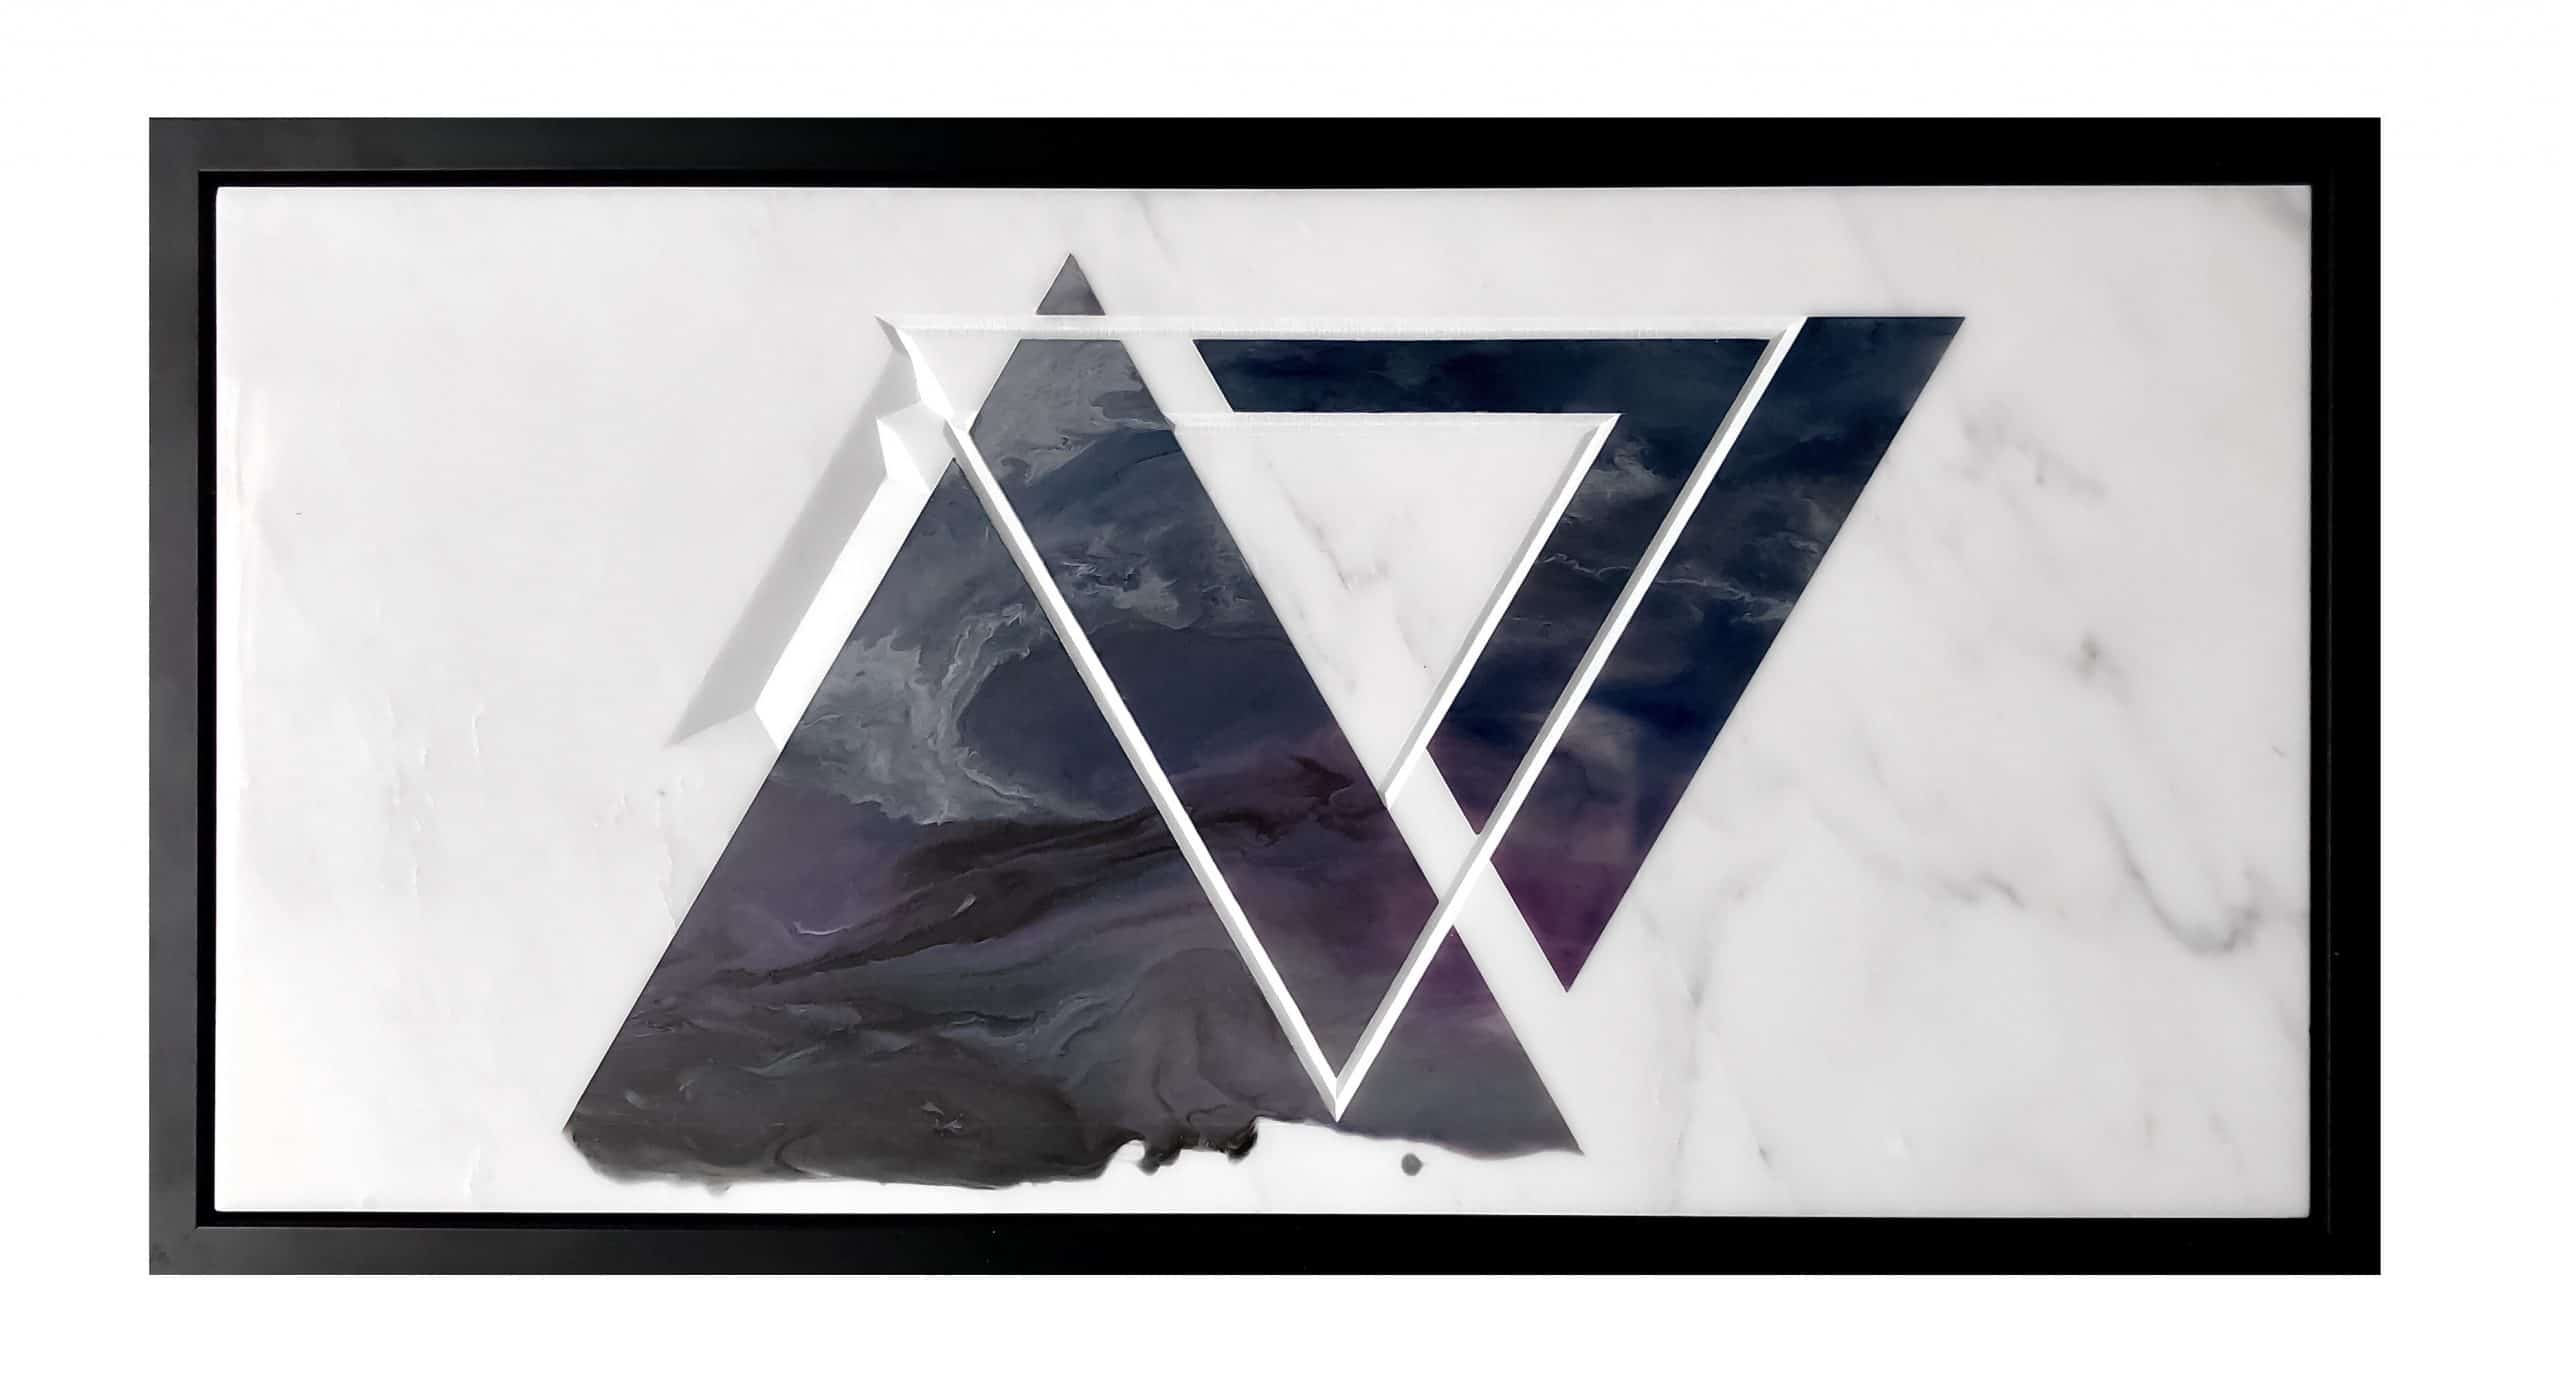 Triangle pattern carved into white marble and painted triangles in dark purple